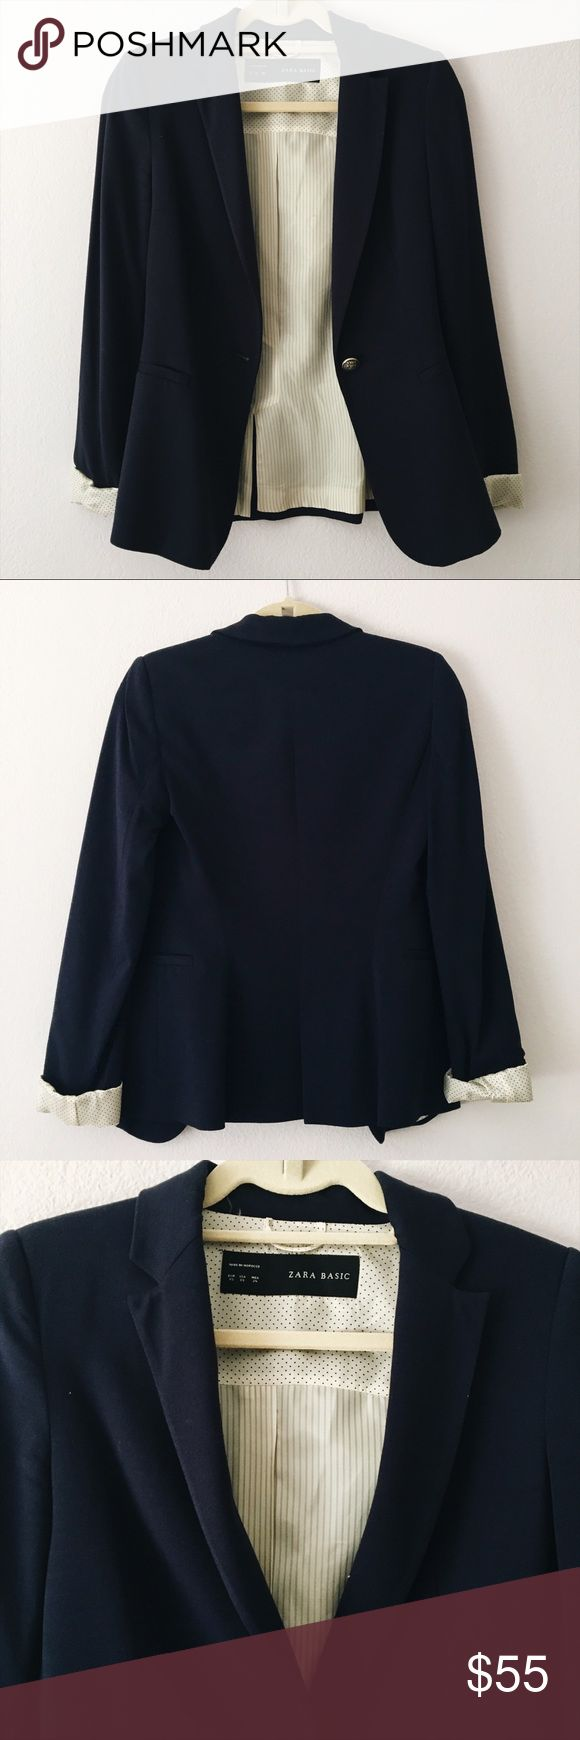 Navy Zara Blazer Navy blue Zara Basic double-cloth blazer with gold button and slit pockets. Highly versatile: dresses up your outfit or can be worn as smart-casual. In perfect condition - Like New (only worn once)! Very wearable, not stiff at all. Women's Size XS. Zara Jackets & Coats Blazers